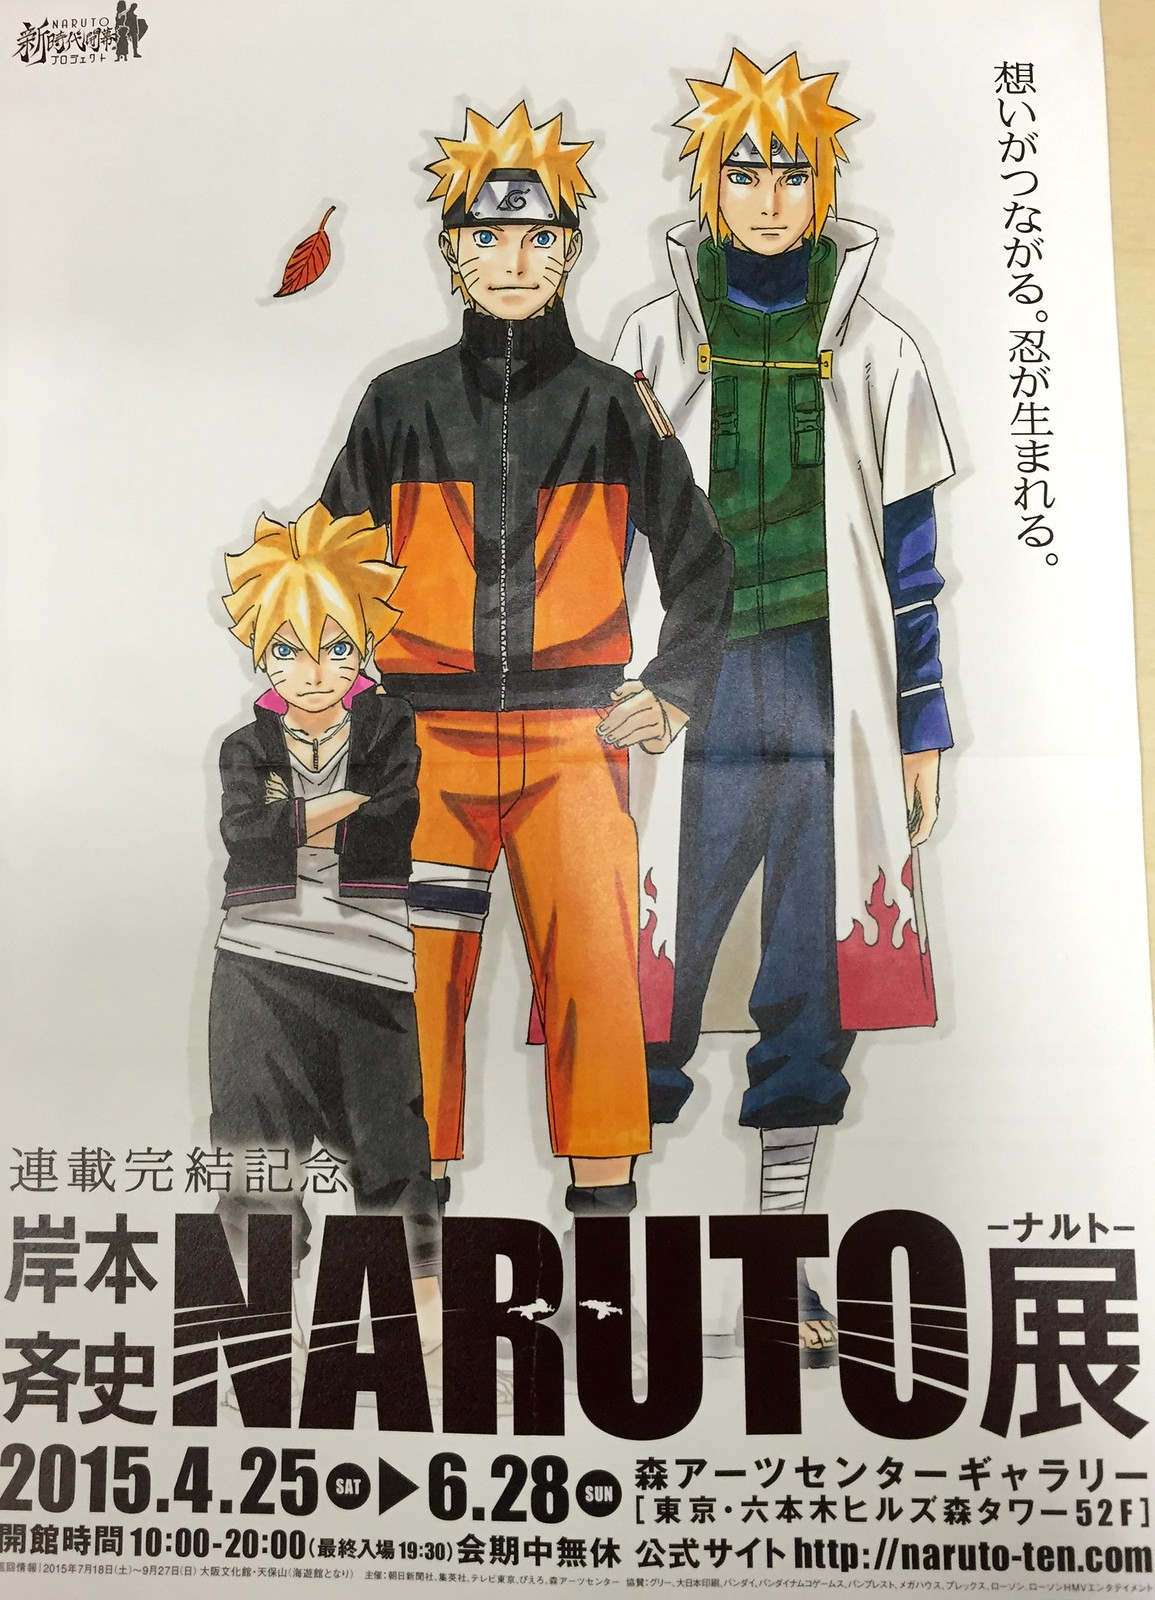 NARUTO EXHIBITION AT ROPPONGI HILLS